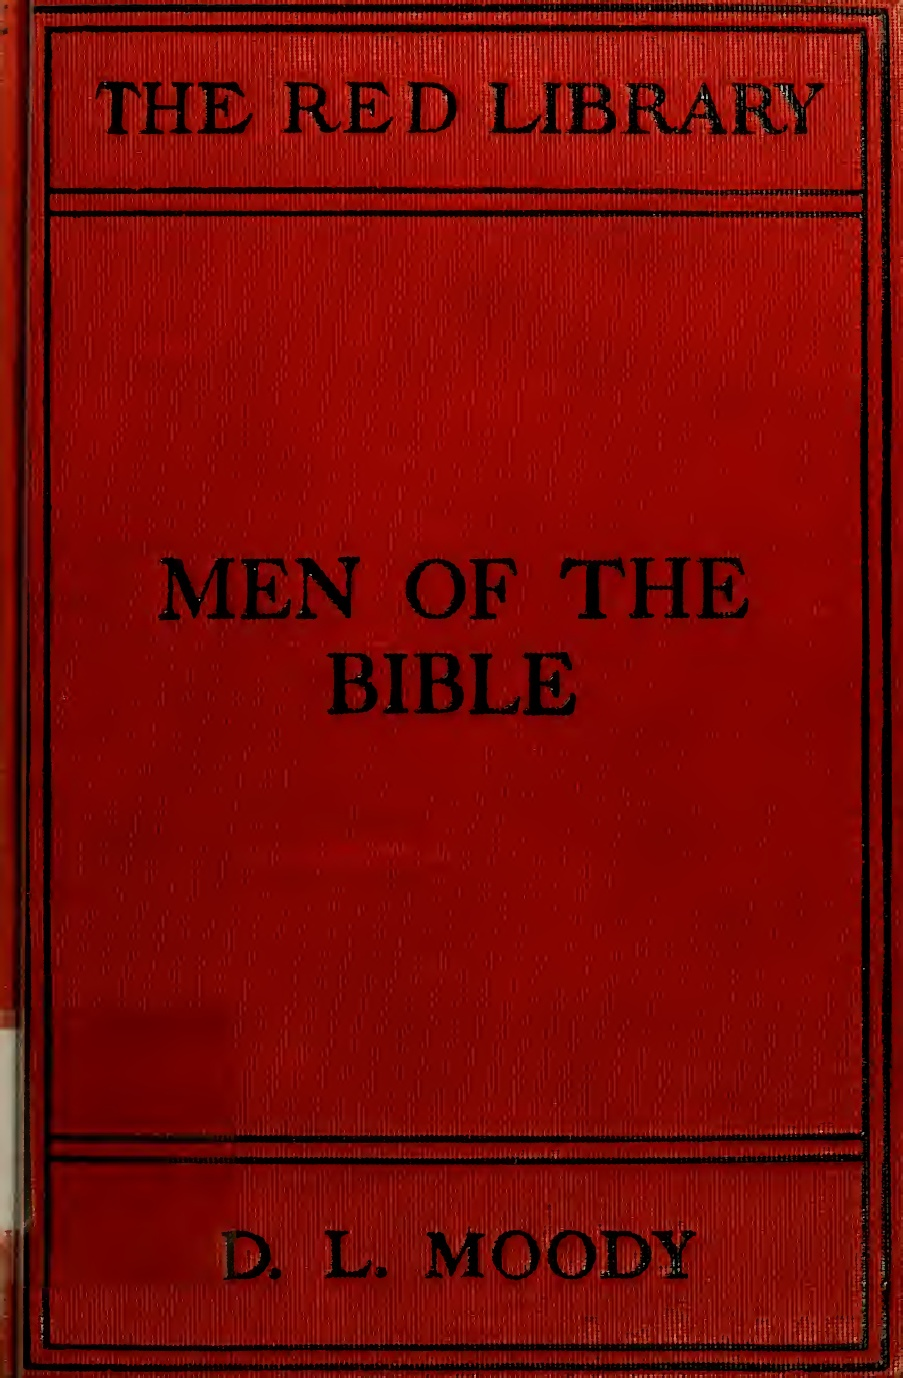 D. L. Moody-Men Of The Bible-